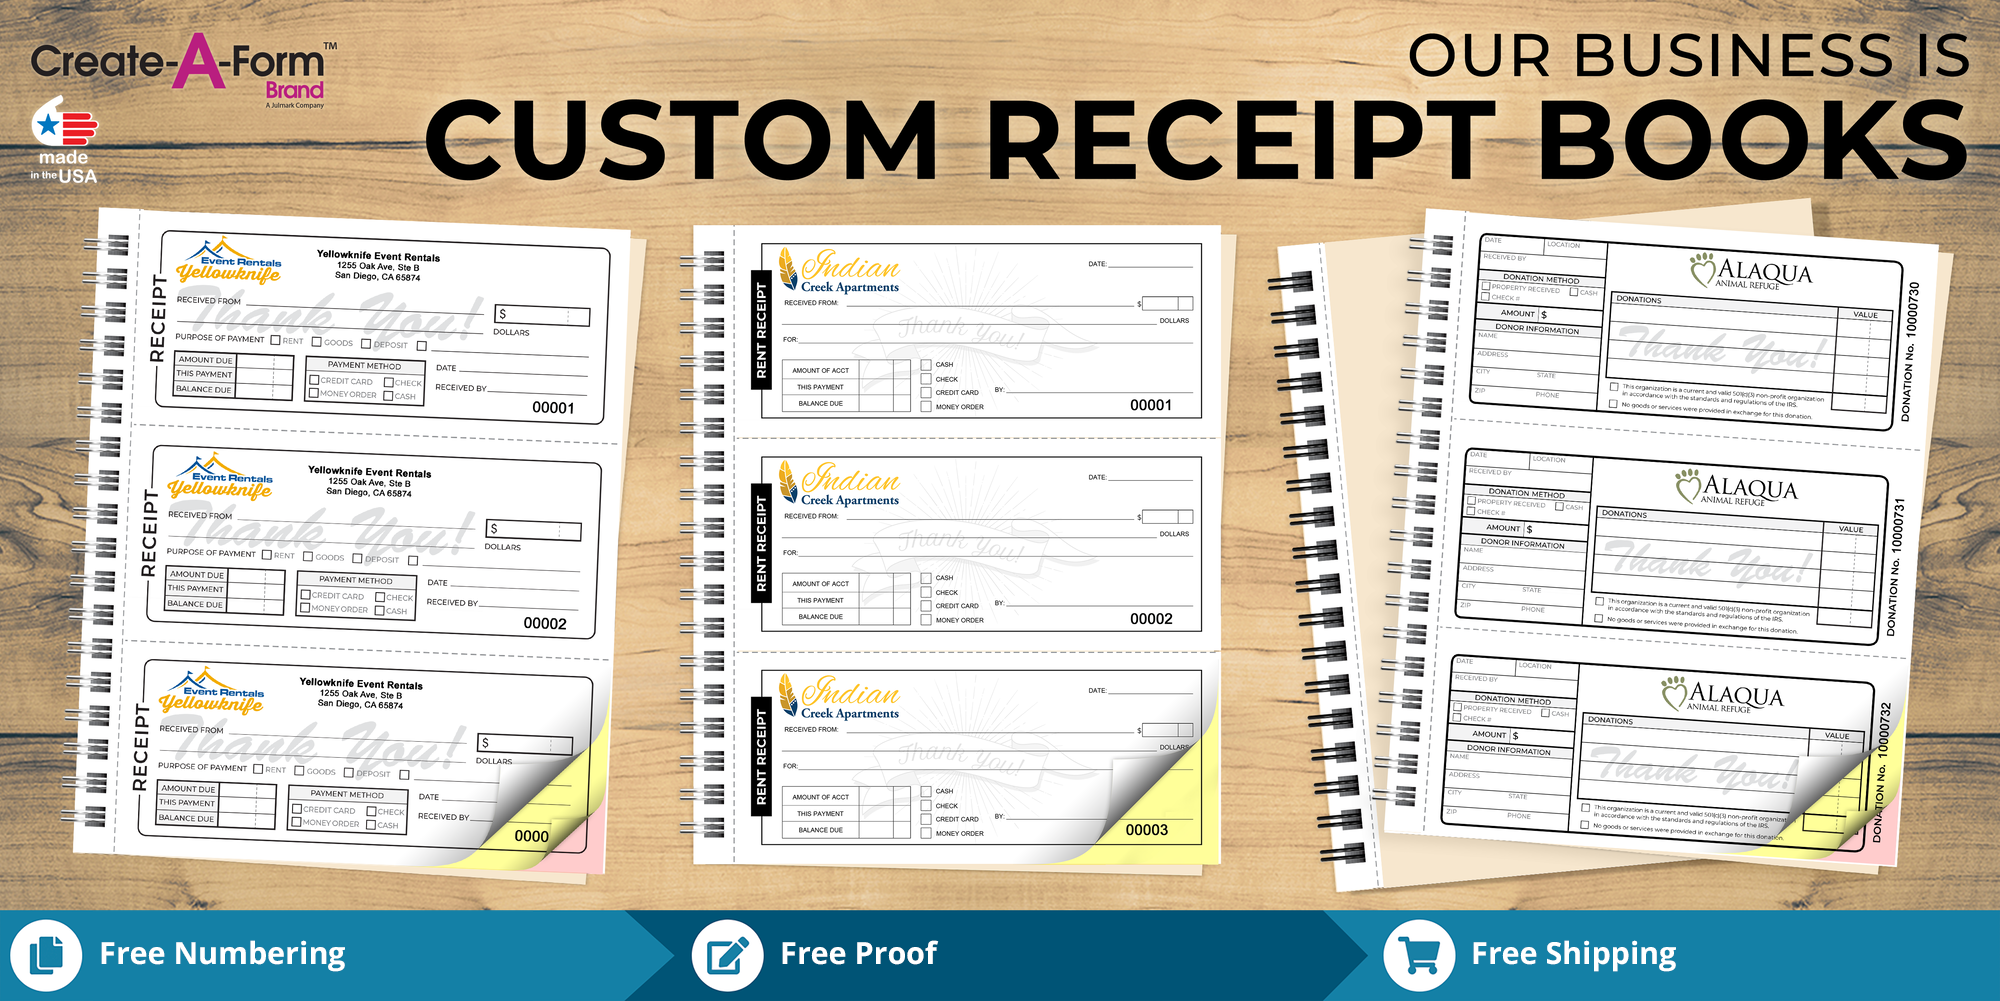 https://printpps.com/images/products_gallery_images/custom-receipt-books-3-up-banner.png